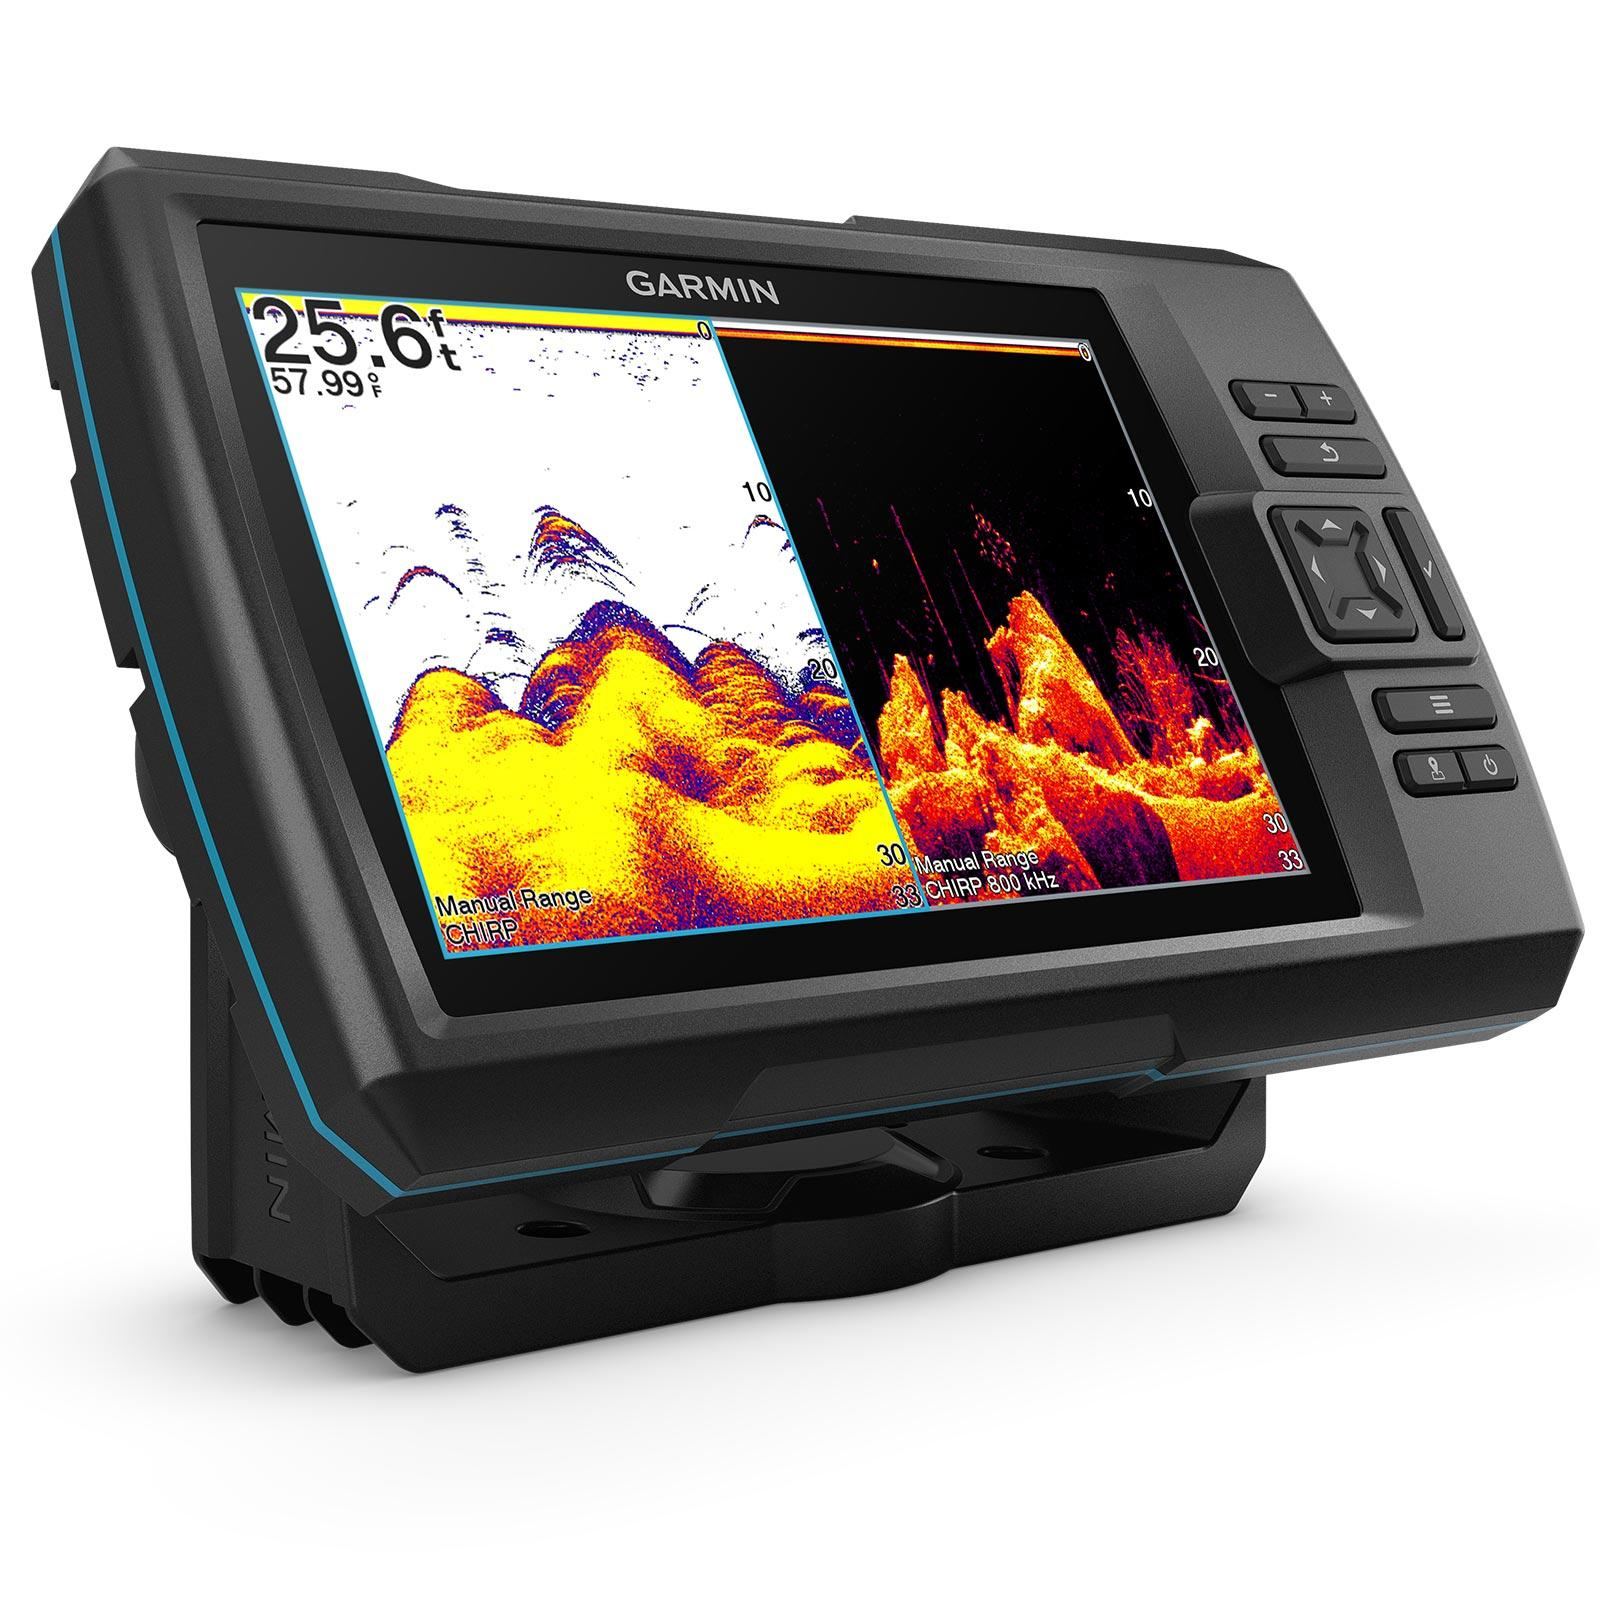 Garmin STRIKER Vivid 7cv with GT20-TM Transducer Split Screen